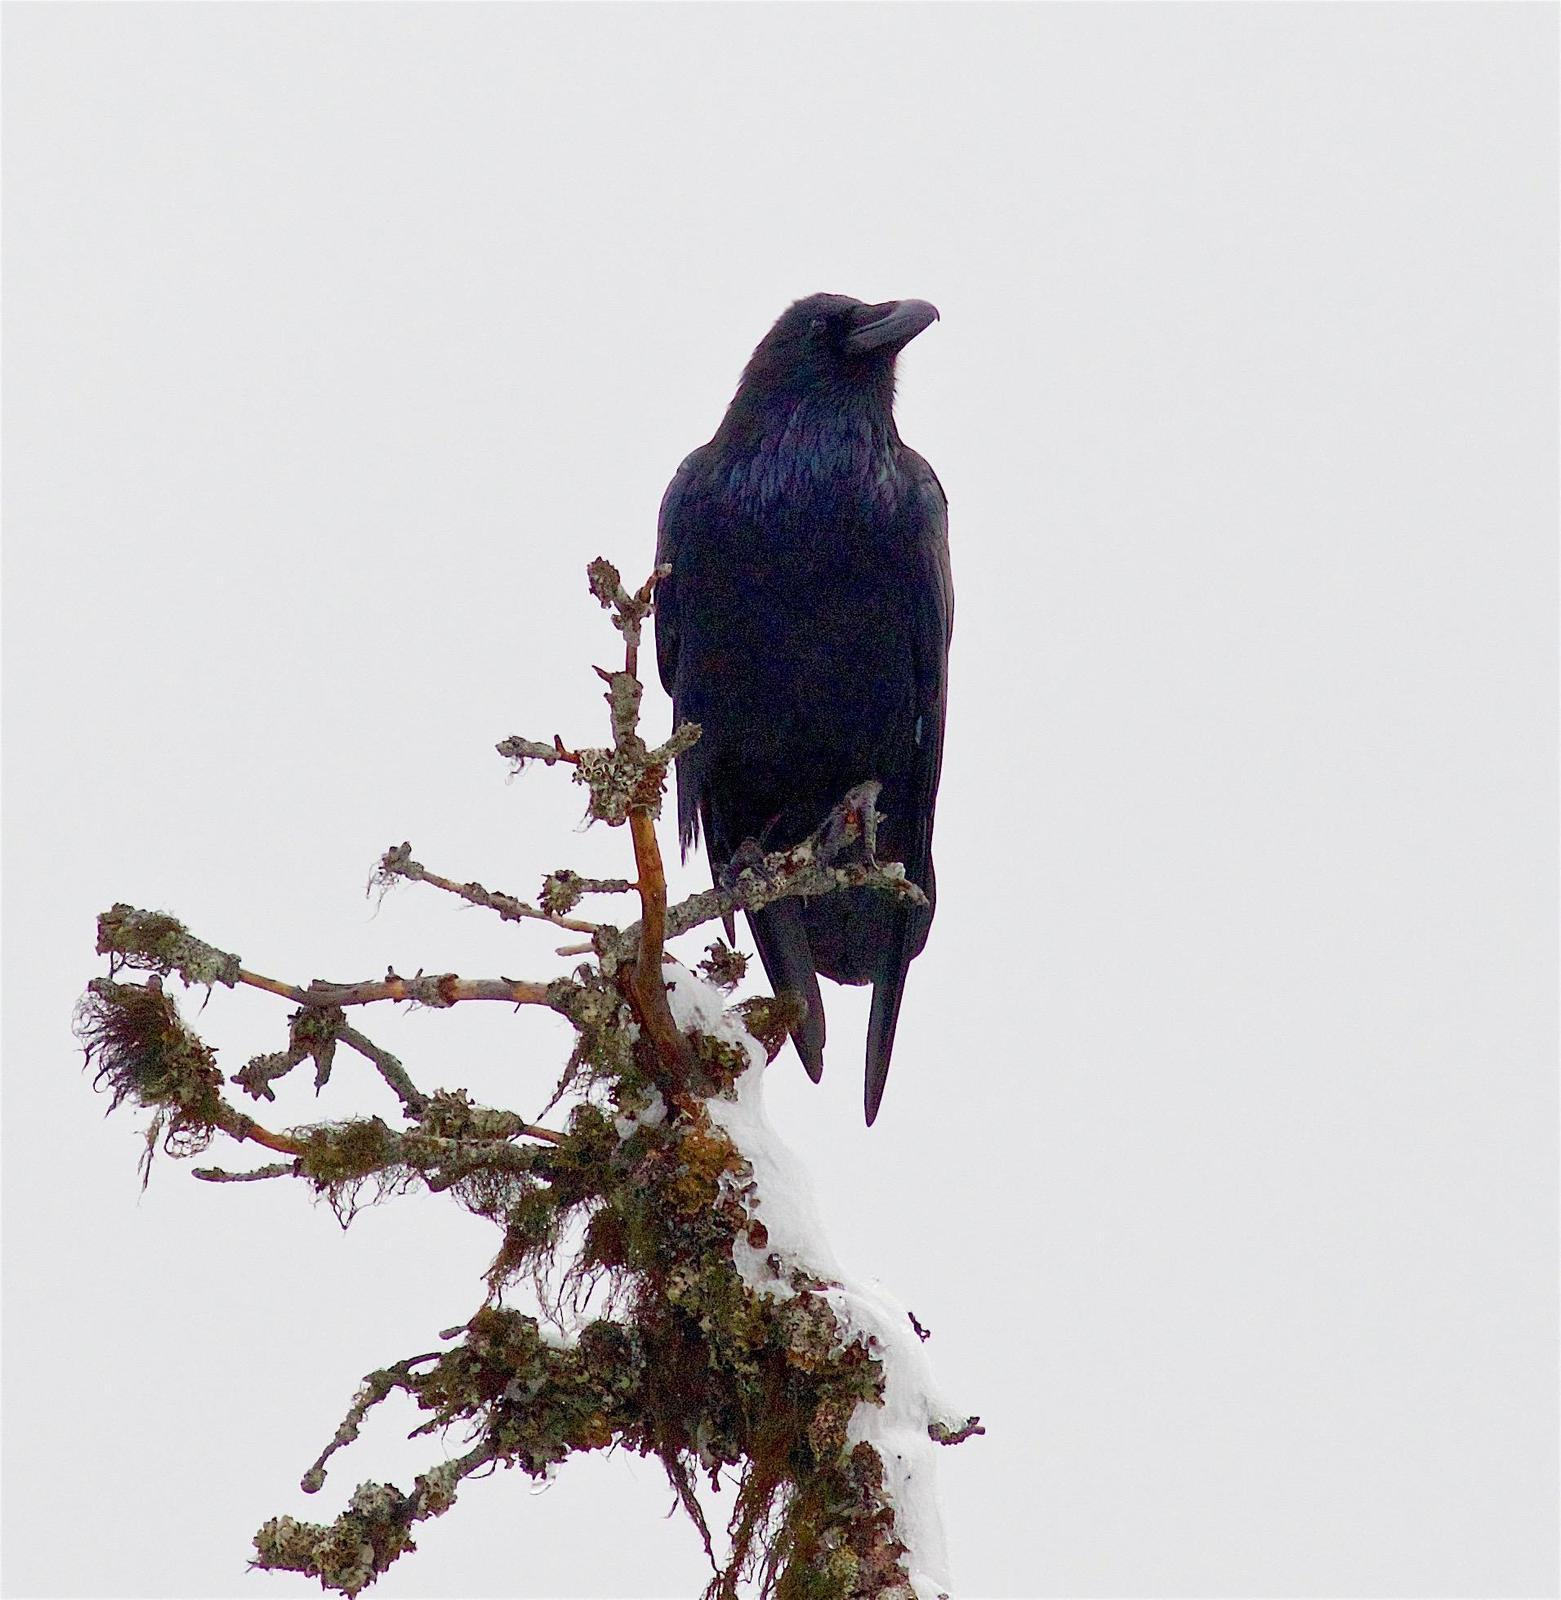 Common Raven Photo by Kathryn Keith